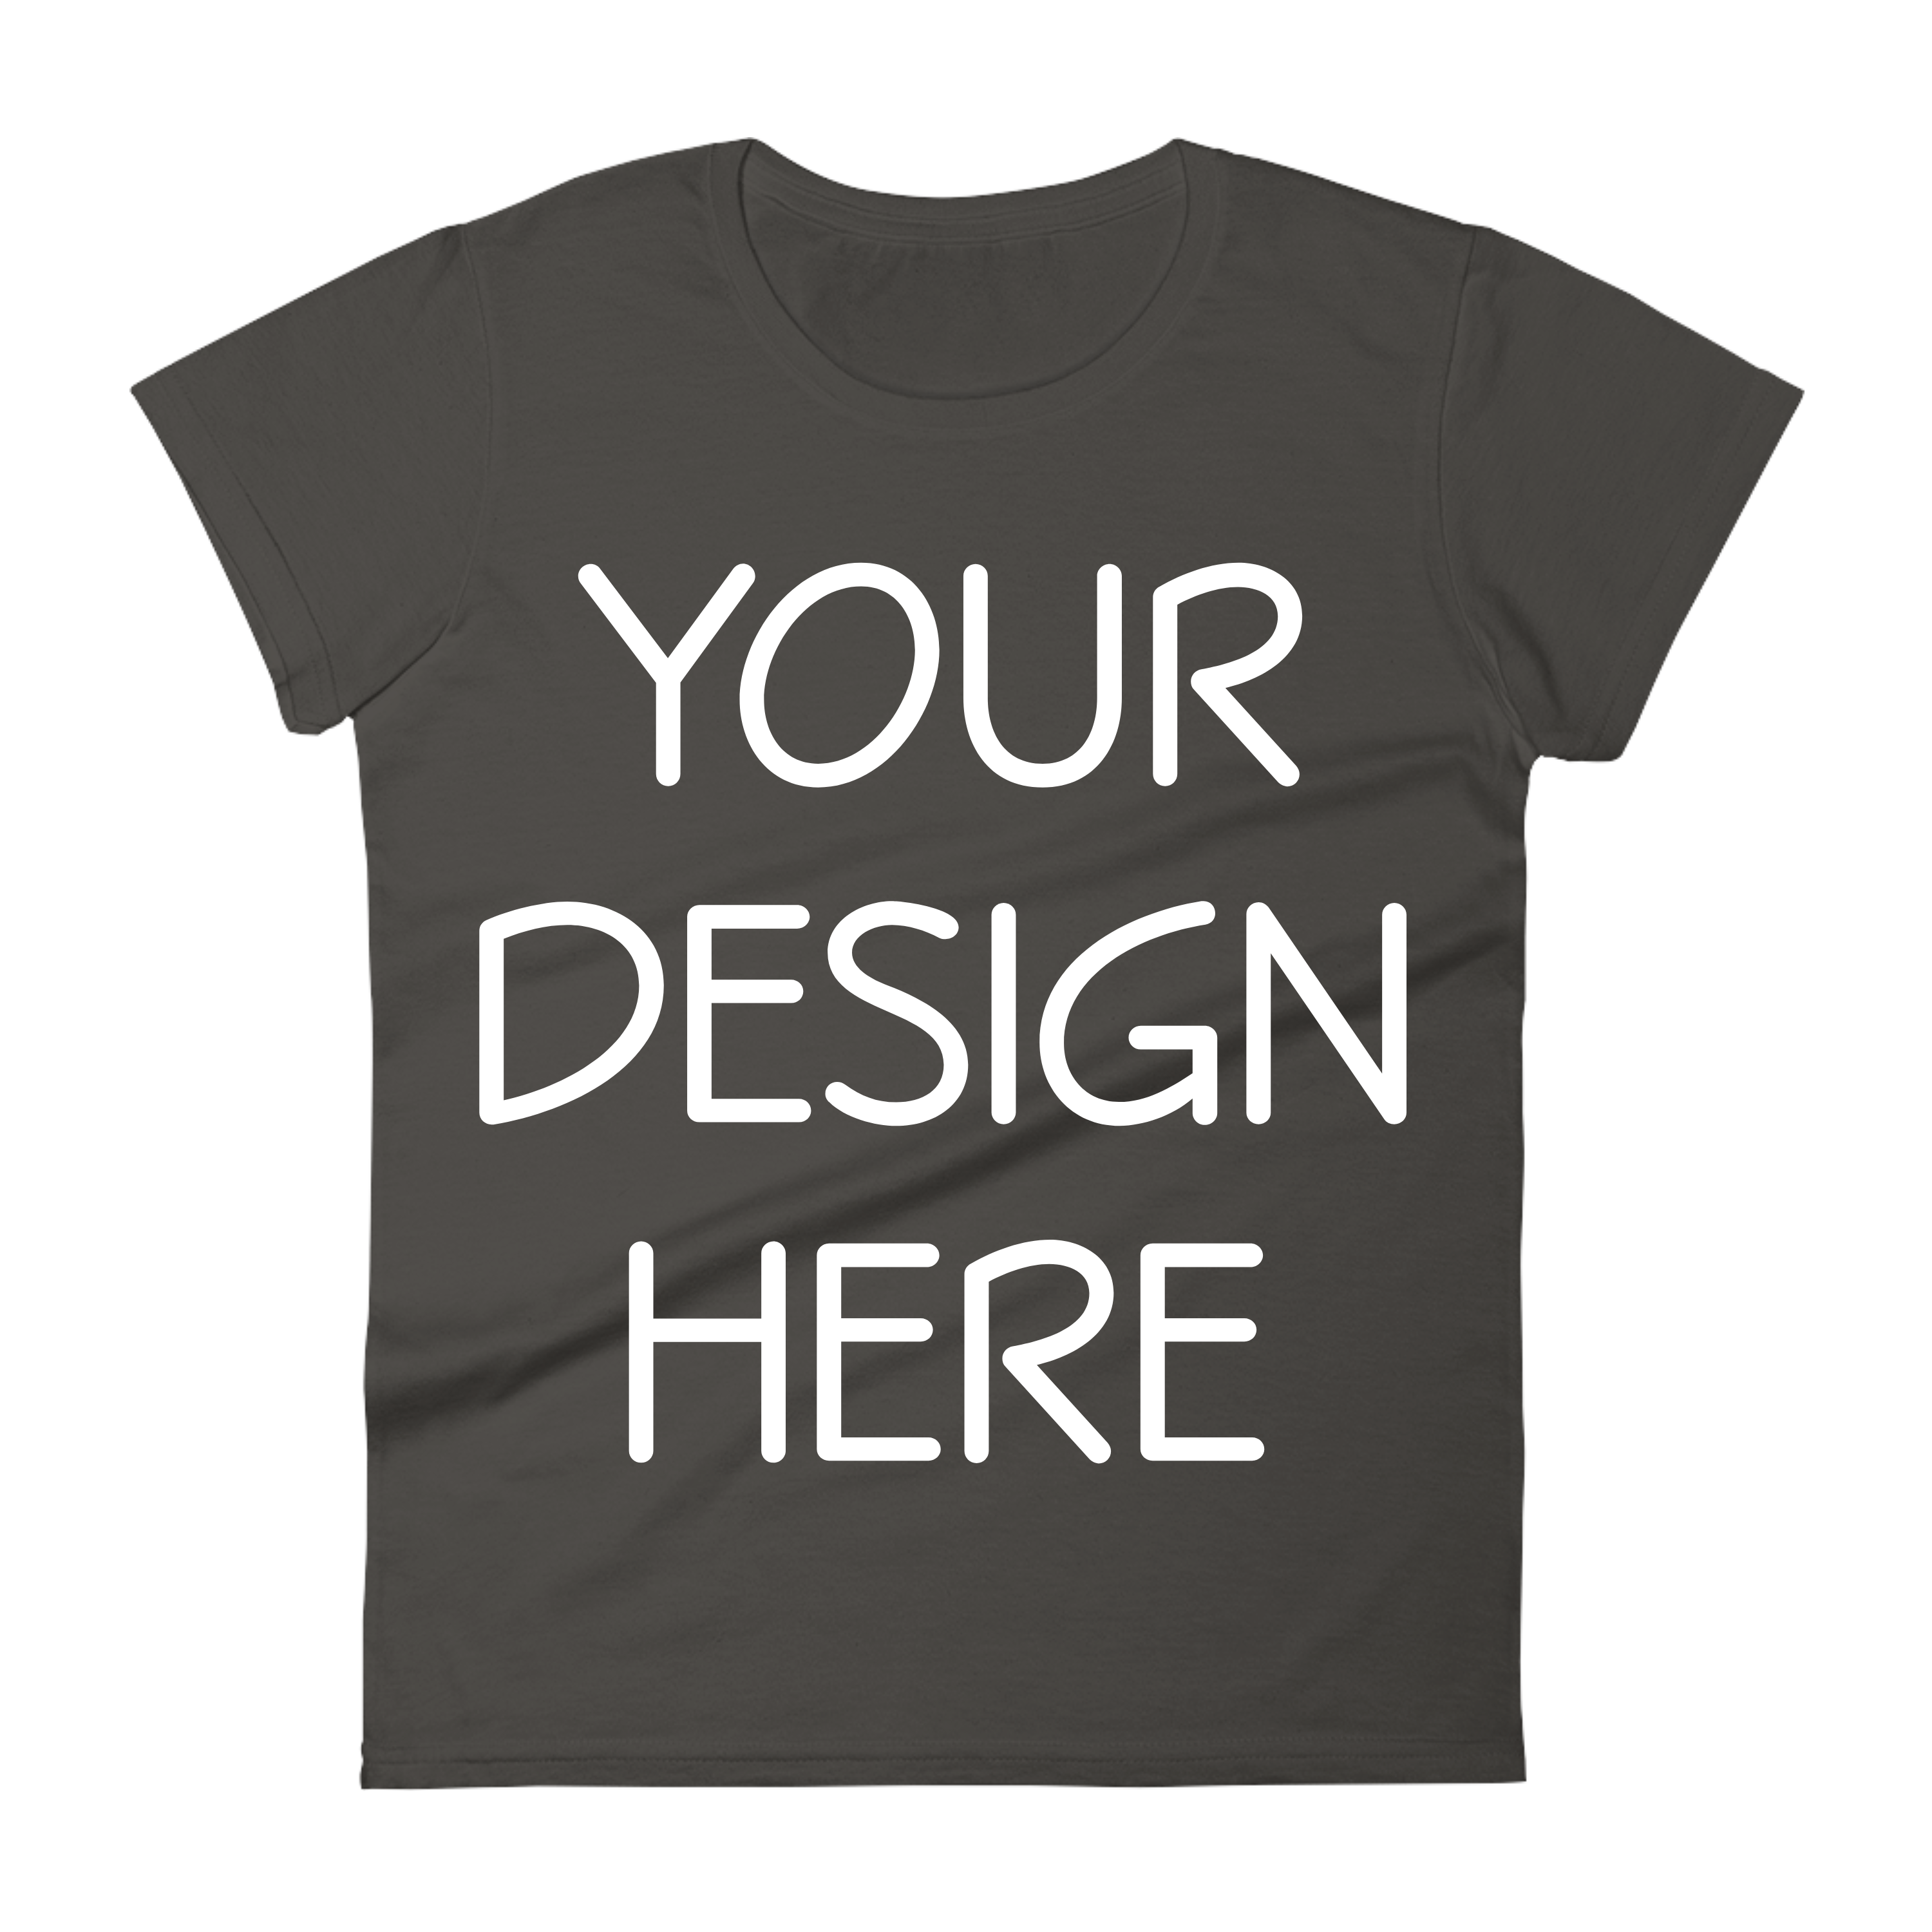 Anvil 880 Ladies Fit T-Shirt Mockups - 17 | PNG|3000x3000px example image 15